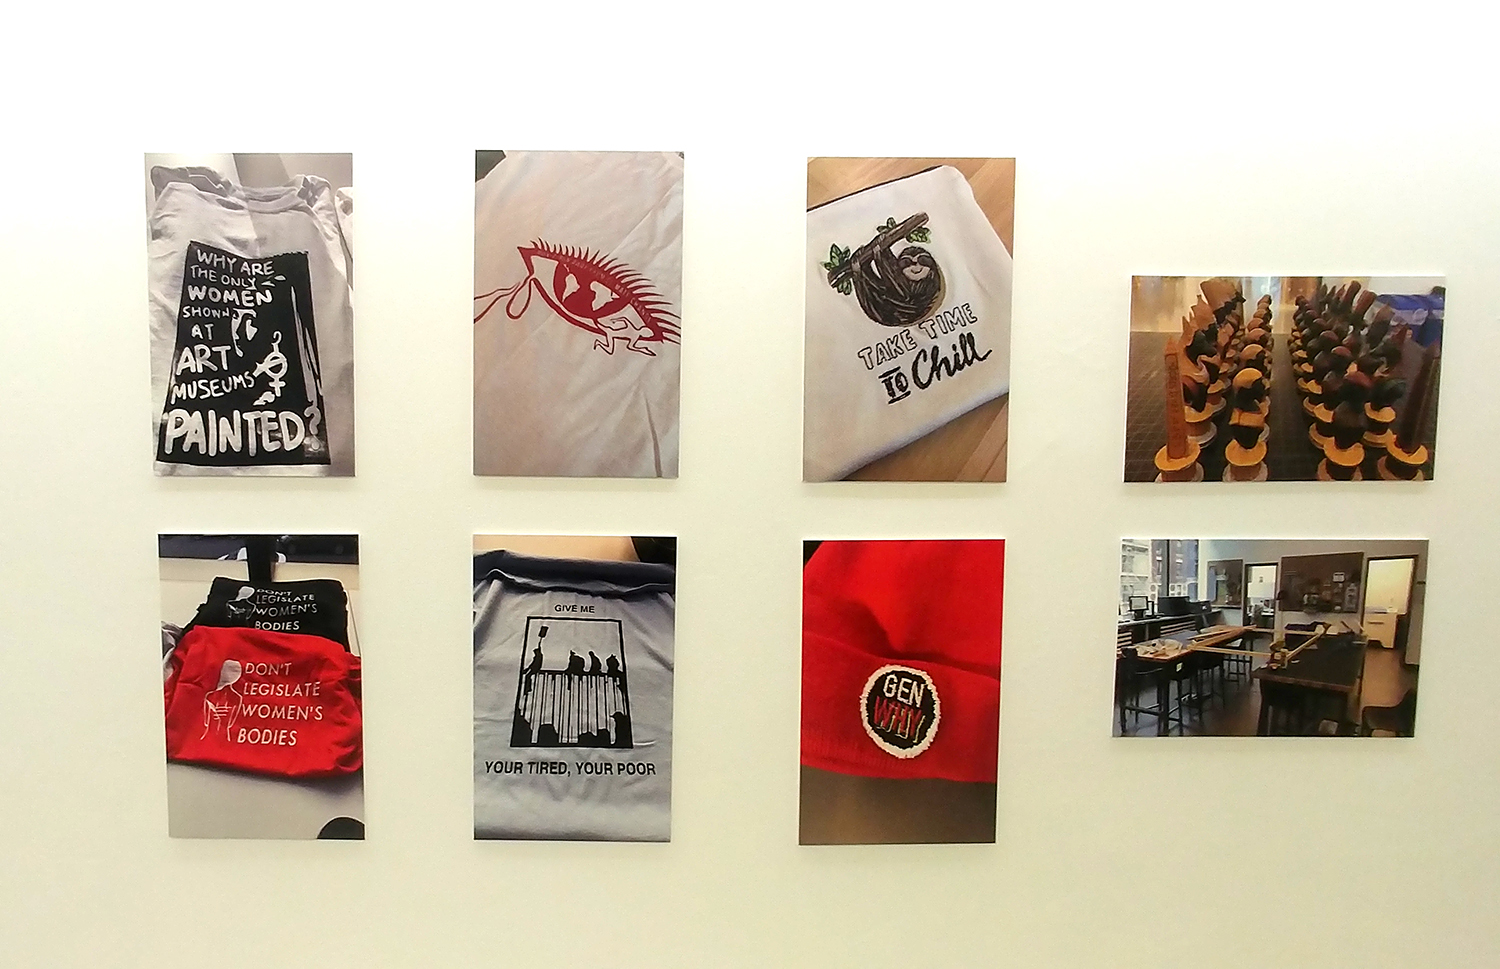 Photos of silk screen and embroidery projects hung up on the wall.